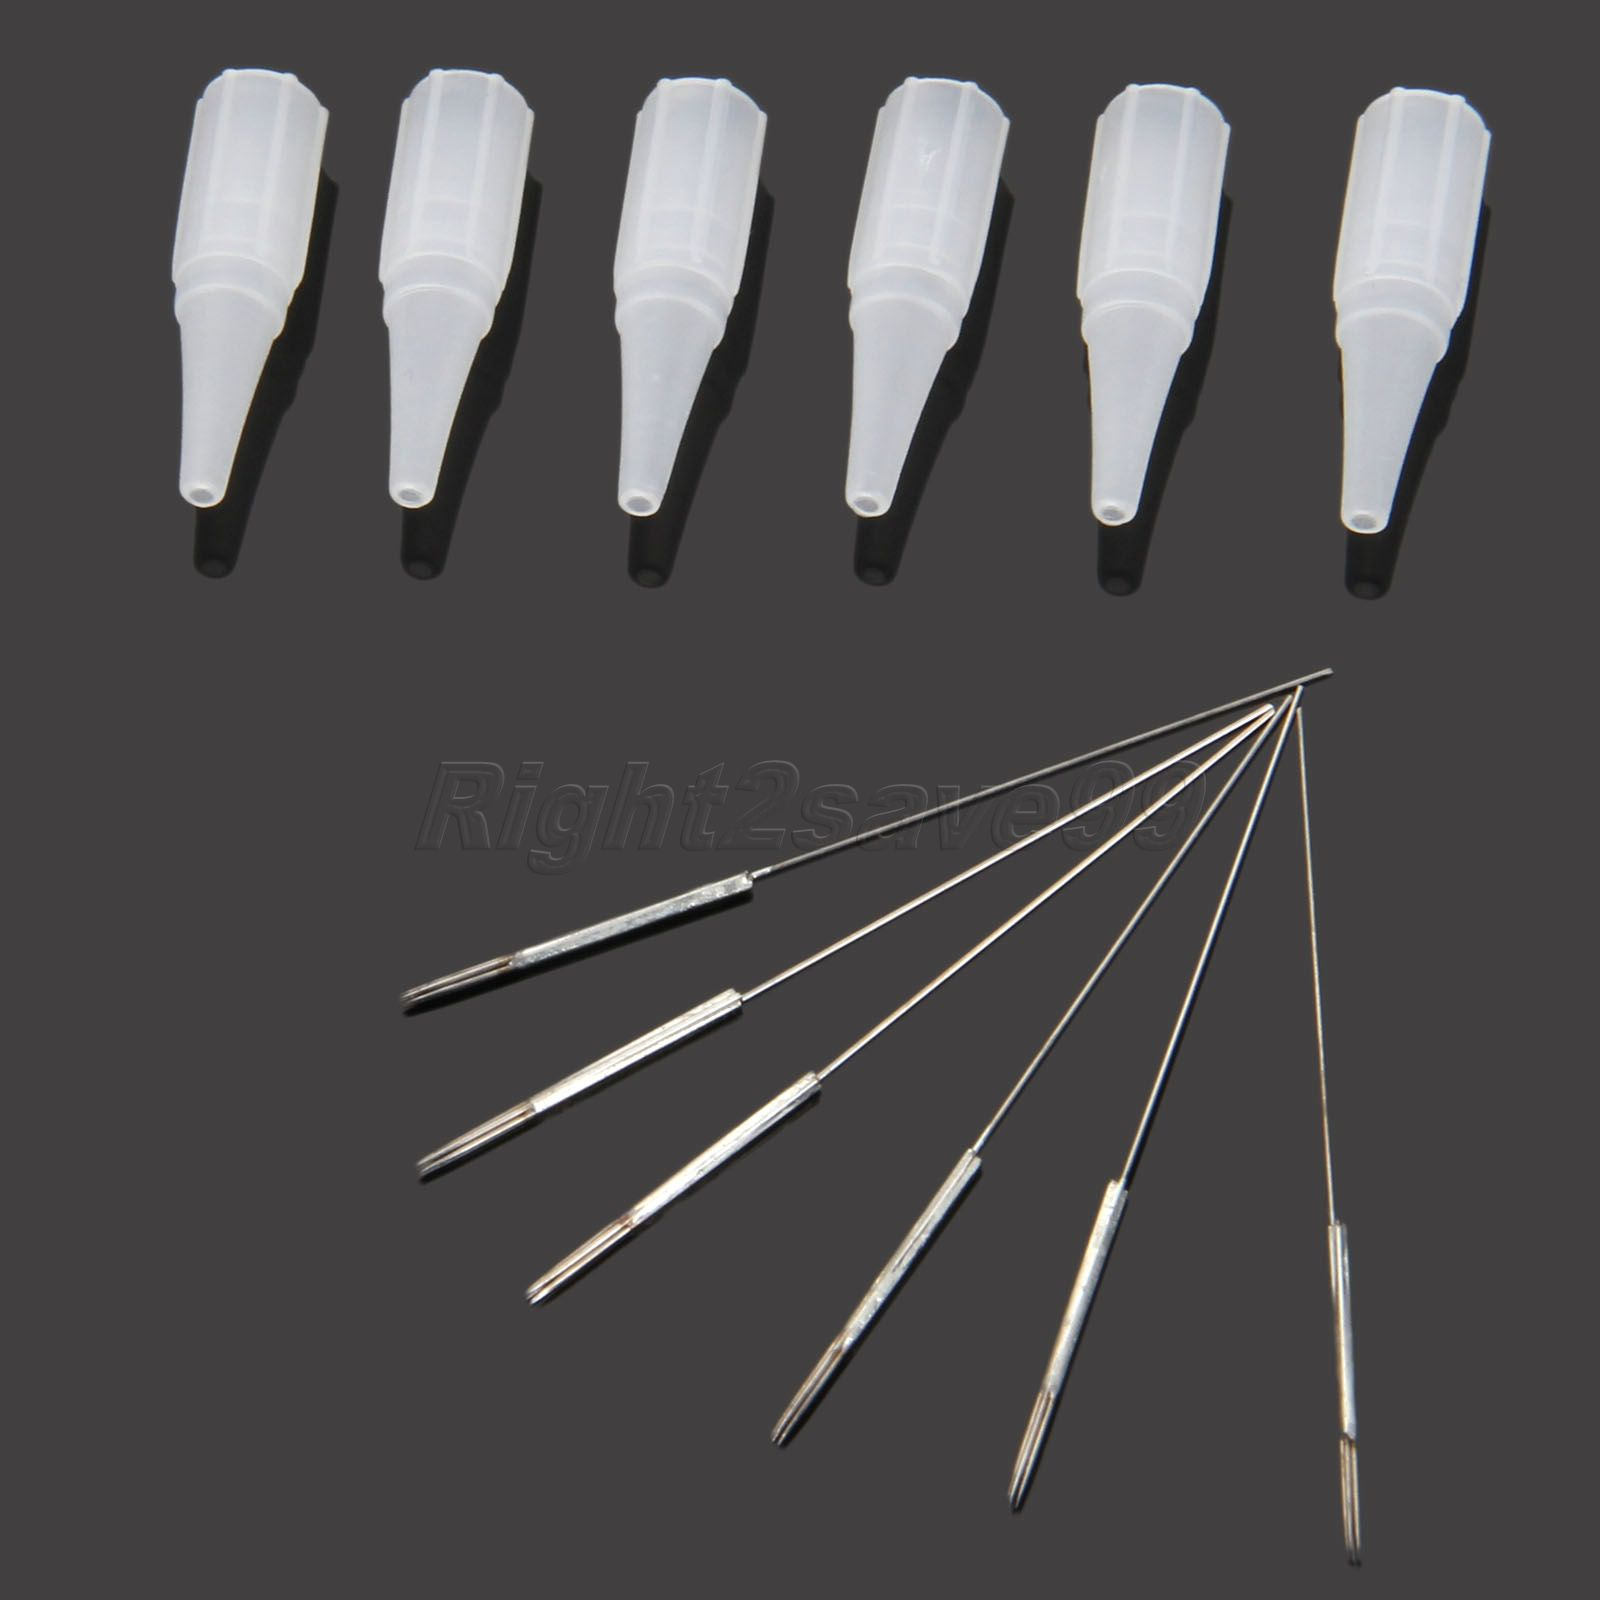 50Pcs 5R Tattoo Needles And 50pcs 5R Tips For Permanent For Makeup Machine Eyebwor Pins Eyeliner Round Pins+caps